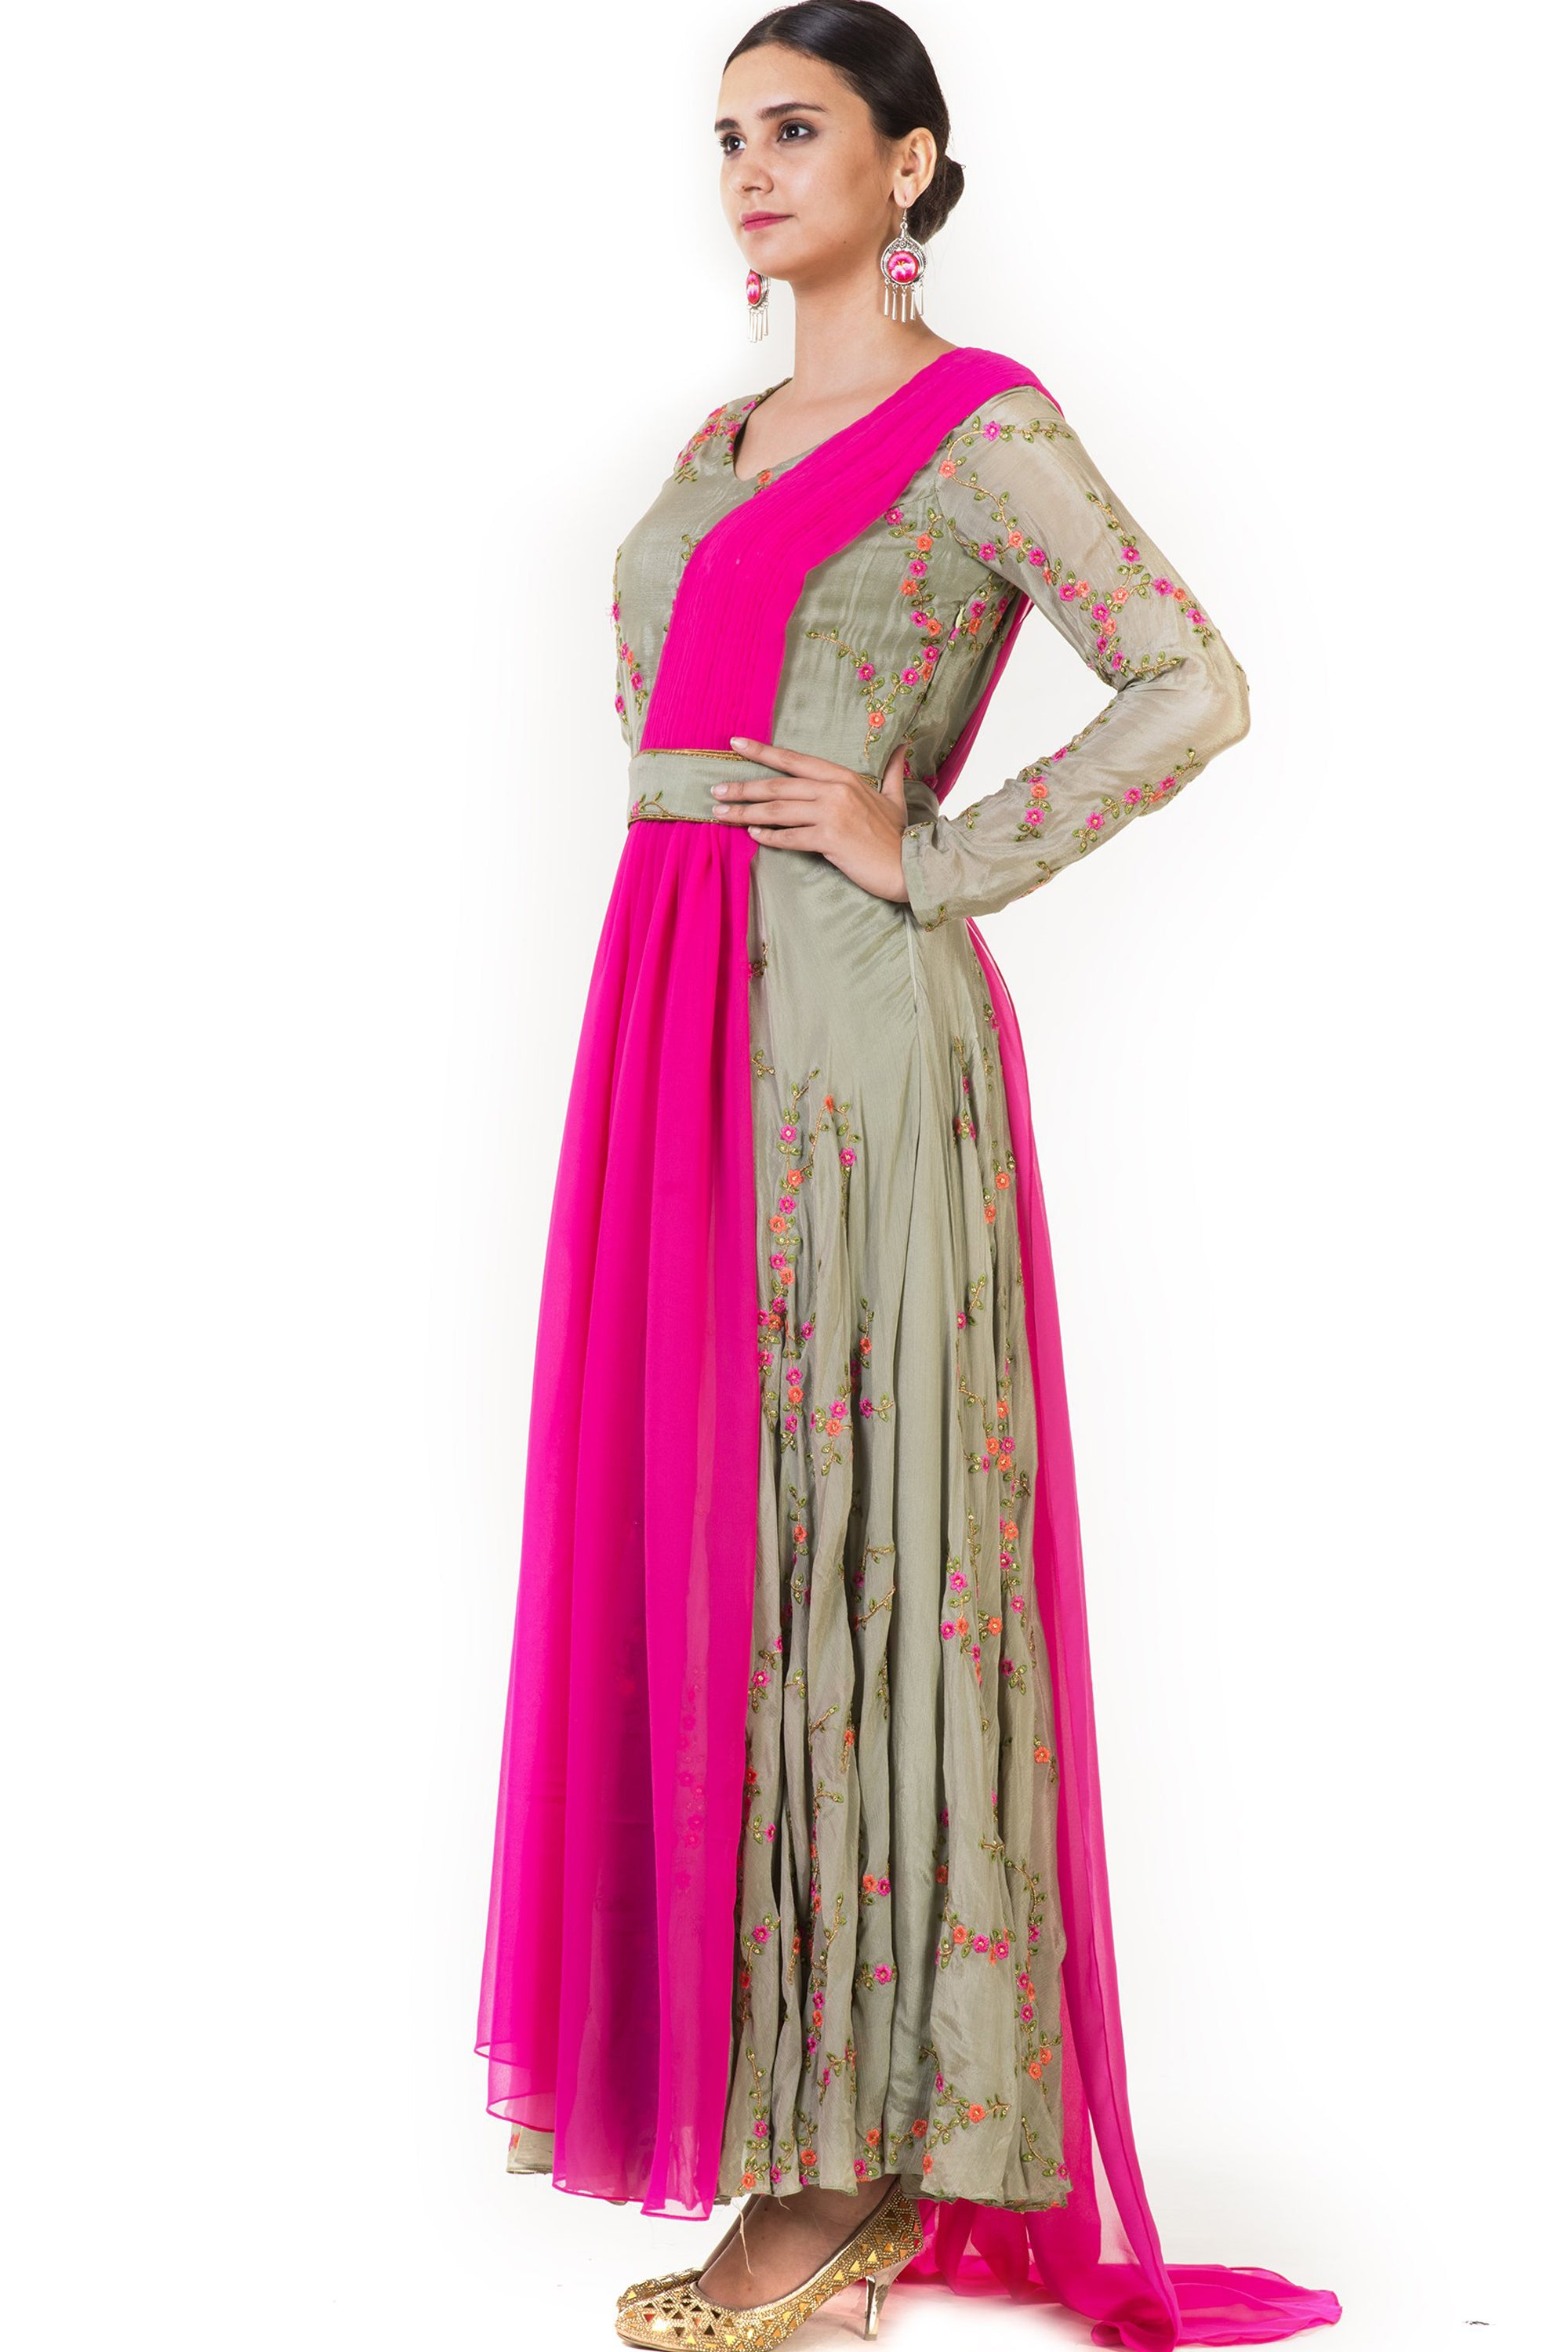 Hand Embroidered Pink & Olive Green Drape Gown Side